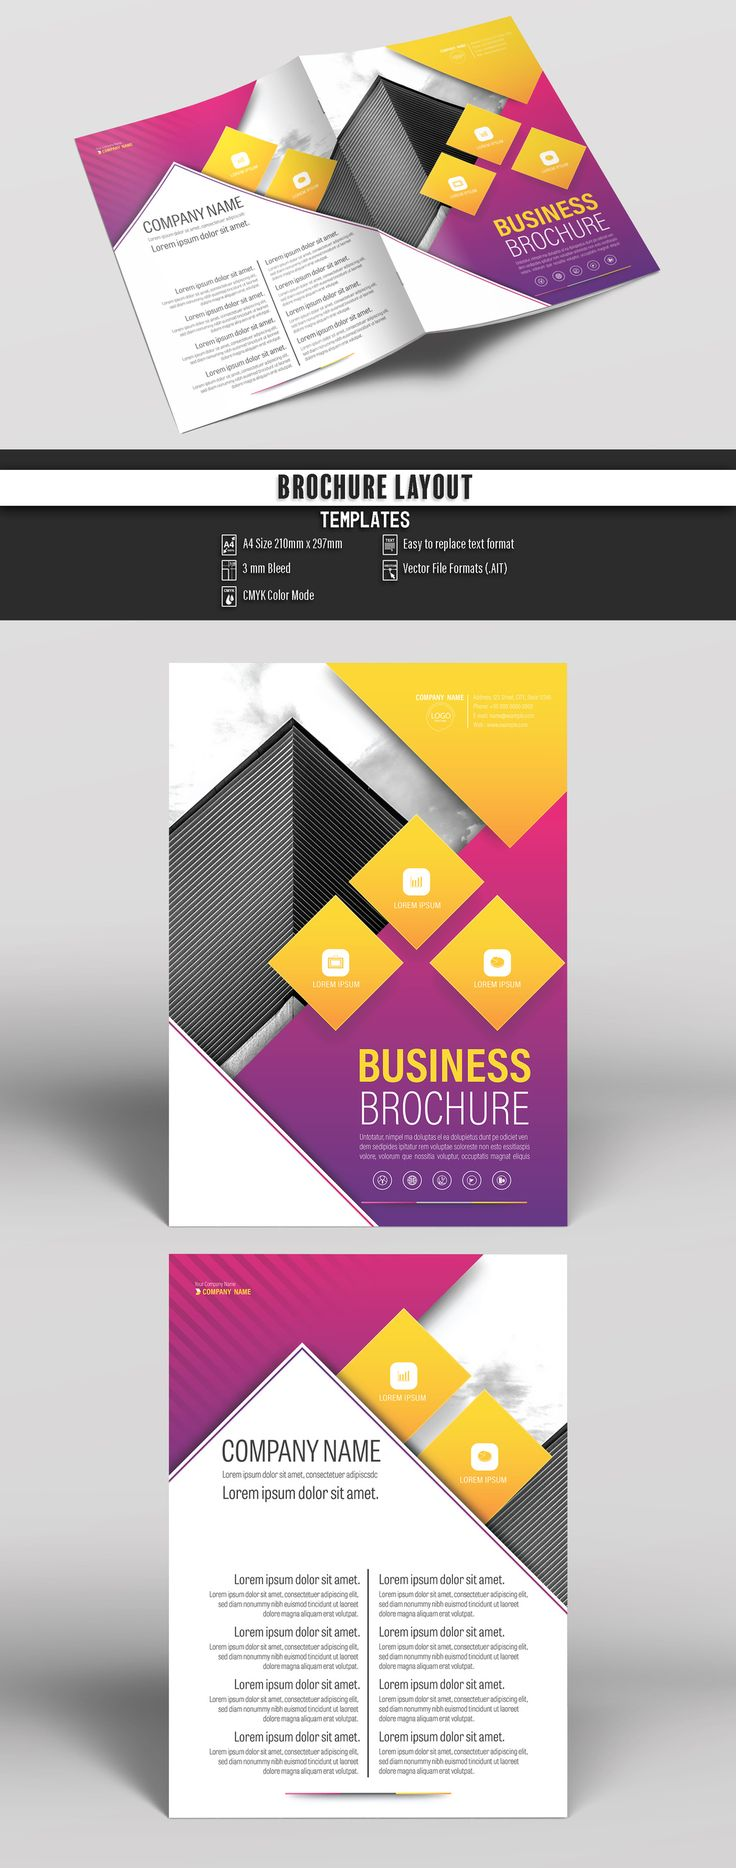 letter format for loan%0A Buy this stock template and explore similar templates at Adobe Stock   Brochure  Business  Proposal  Booklet  Flyer  Template  Design  Layout   Cover  Book